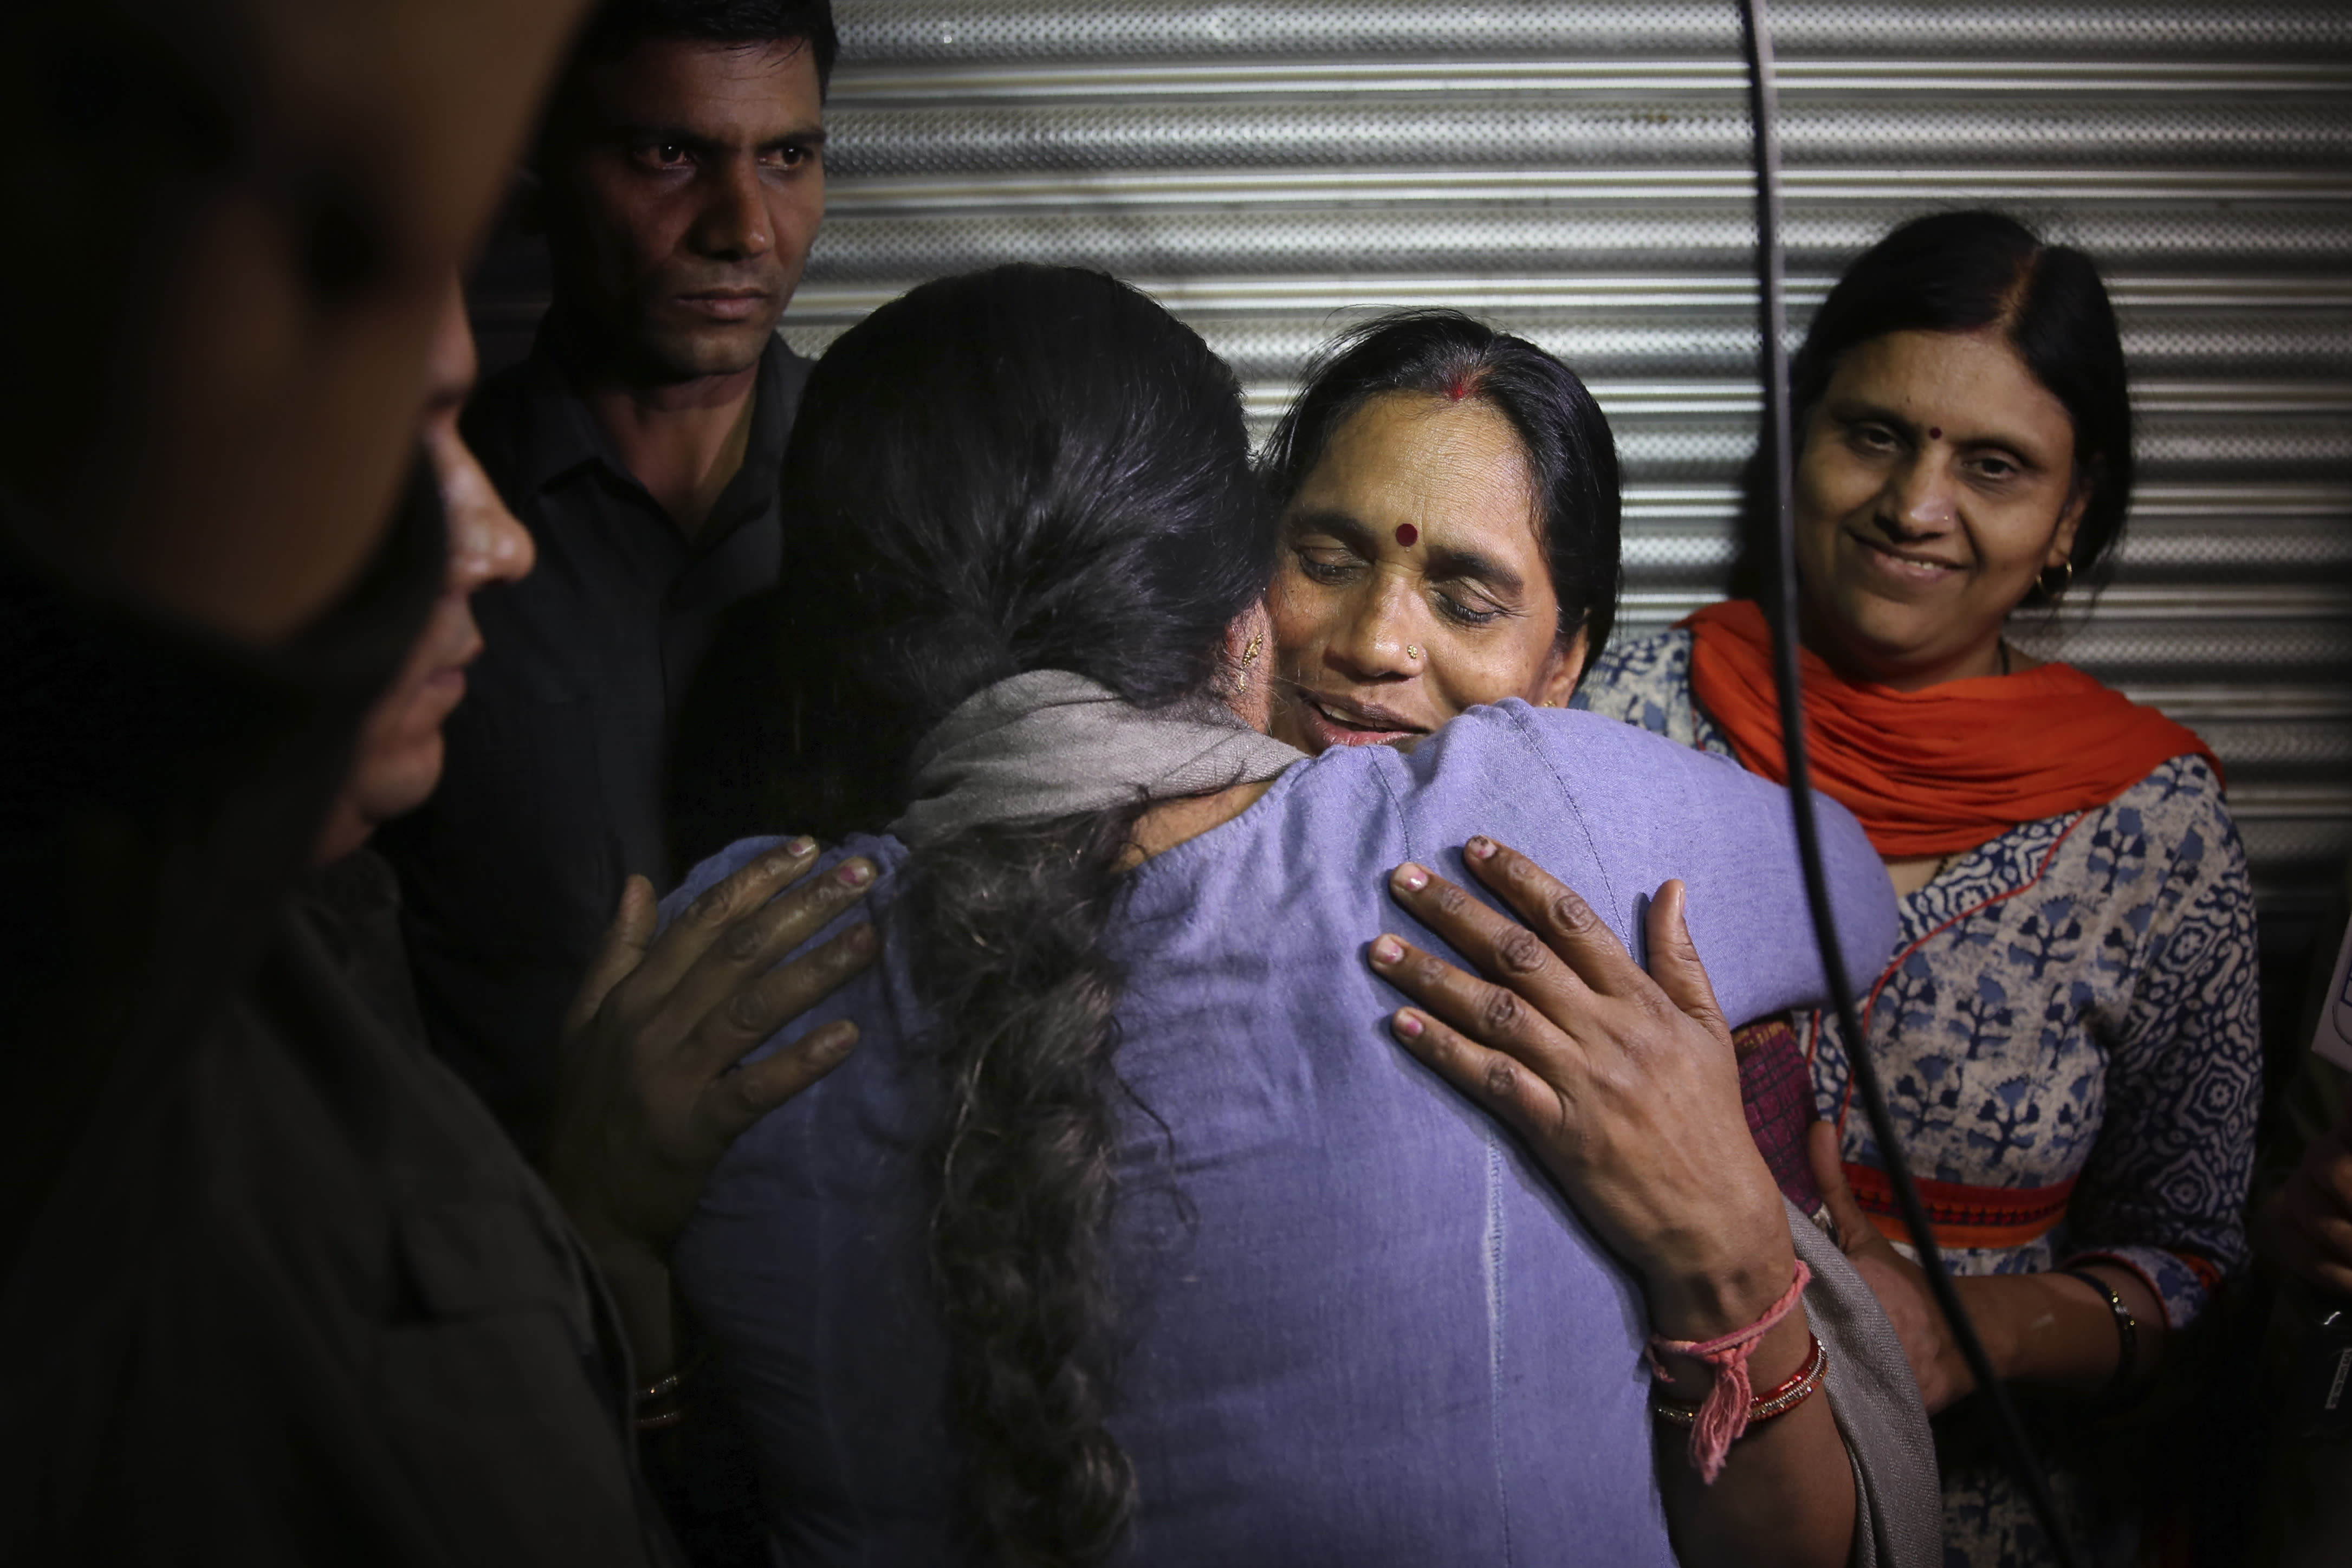 India executes four men for brutal 2012 Delhi bus rape and murder